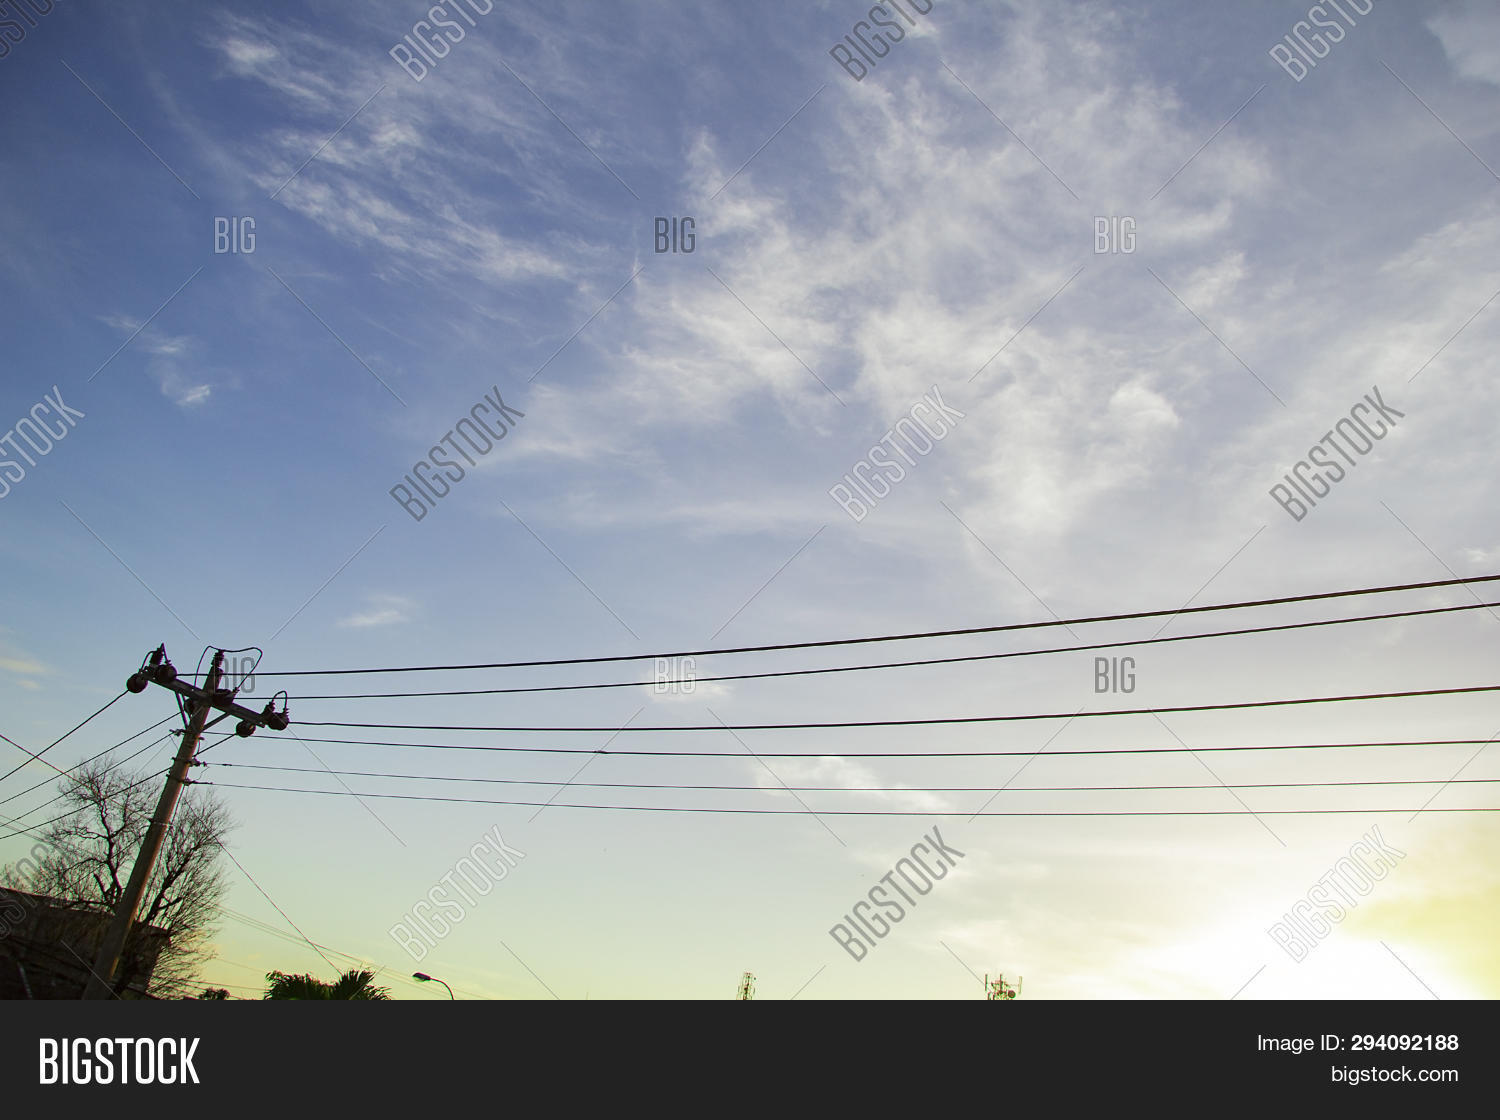 Utility Poles Image & Photo (Free Trial) | Bigstock